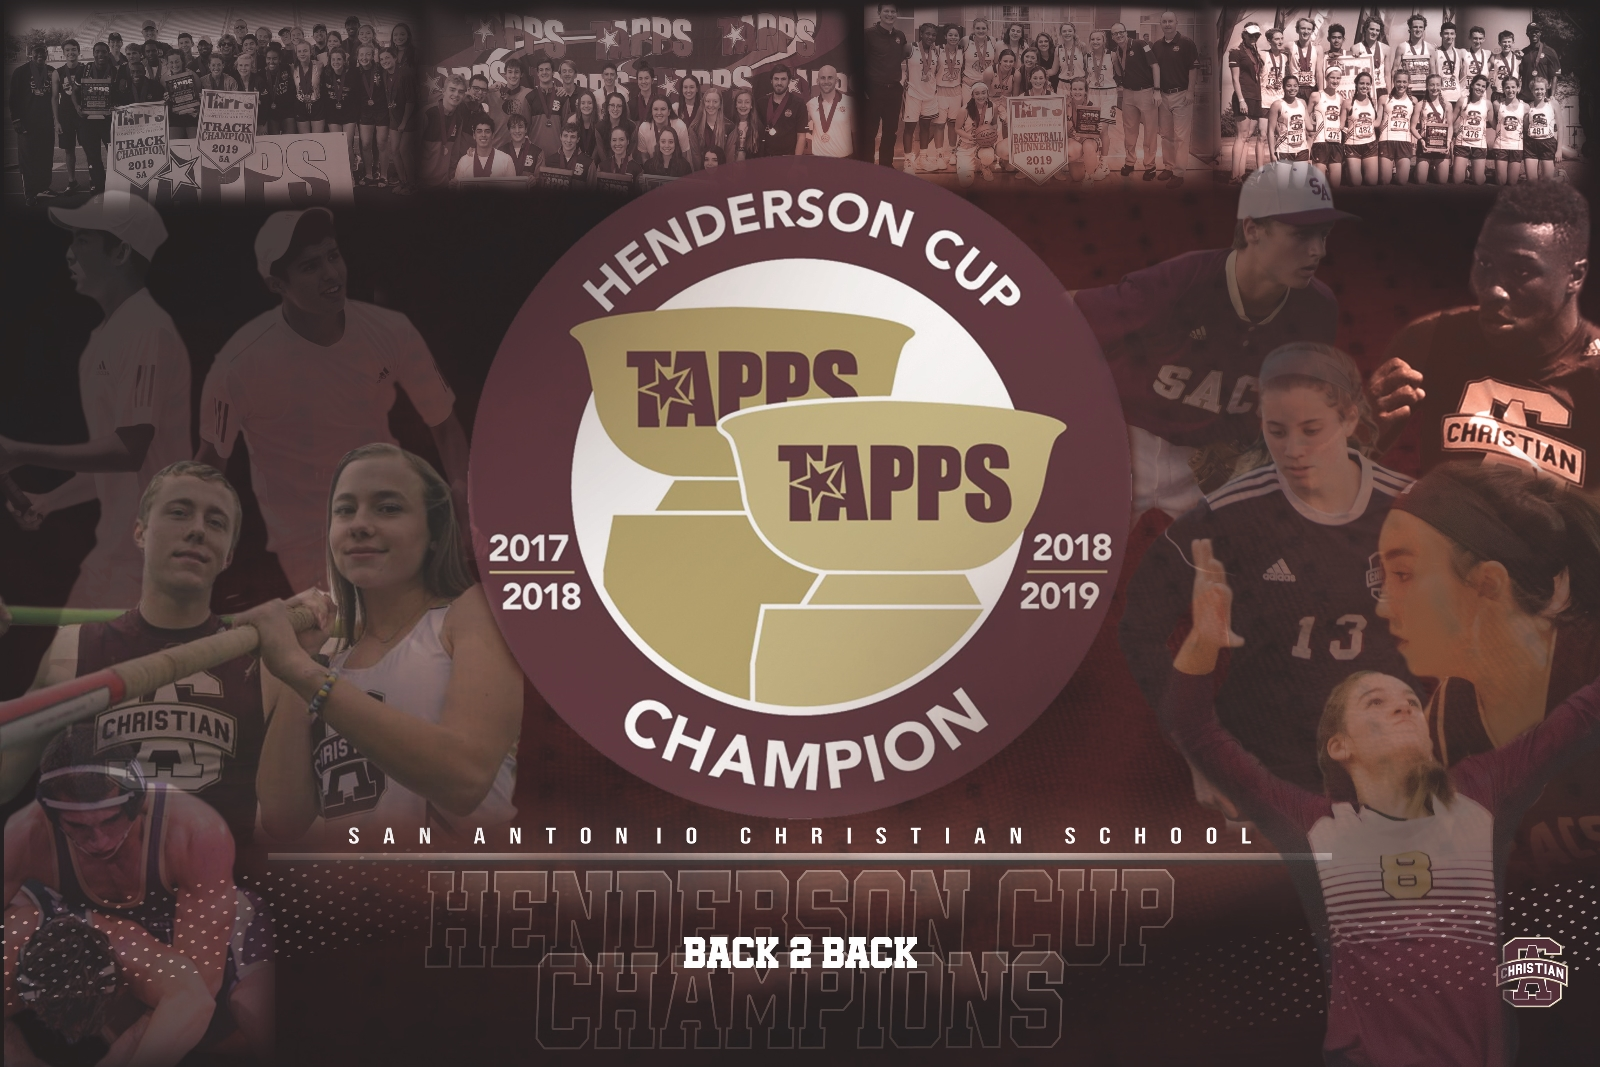 HENDERSON CUP CHAMPIONS!